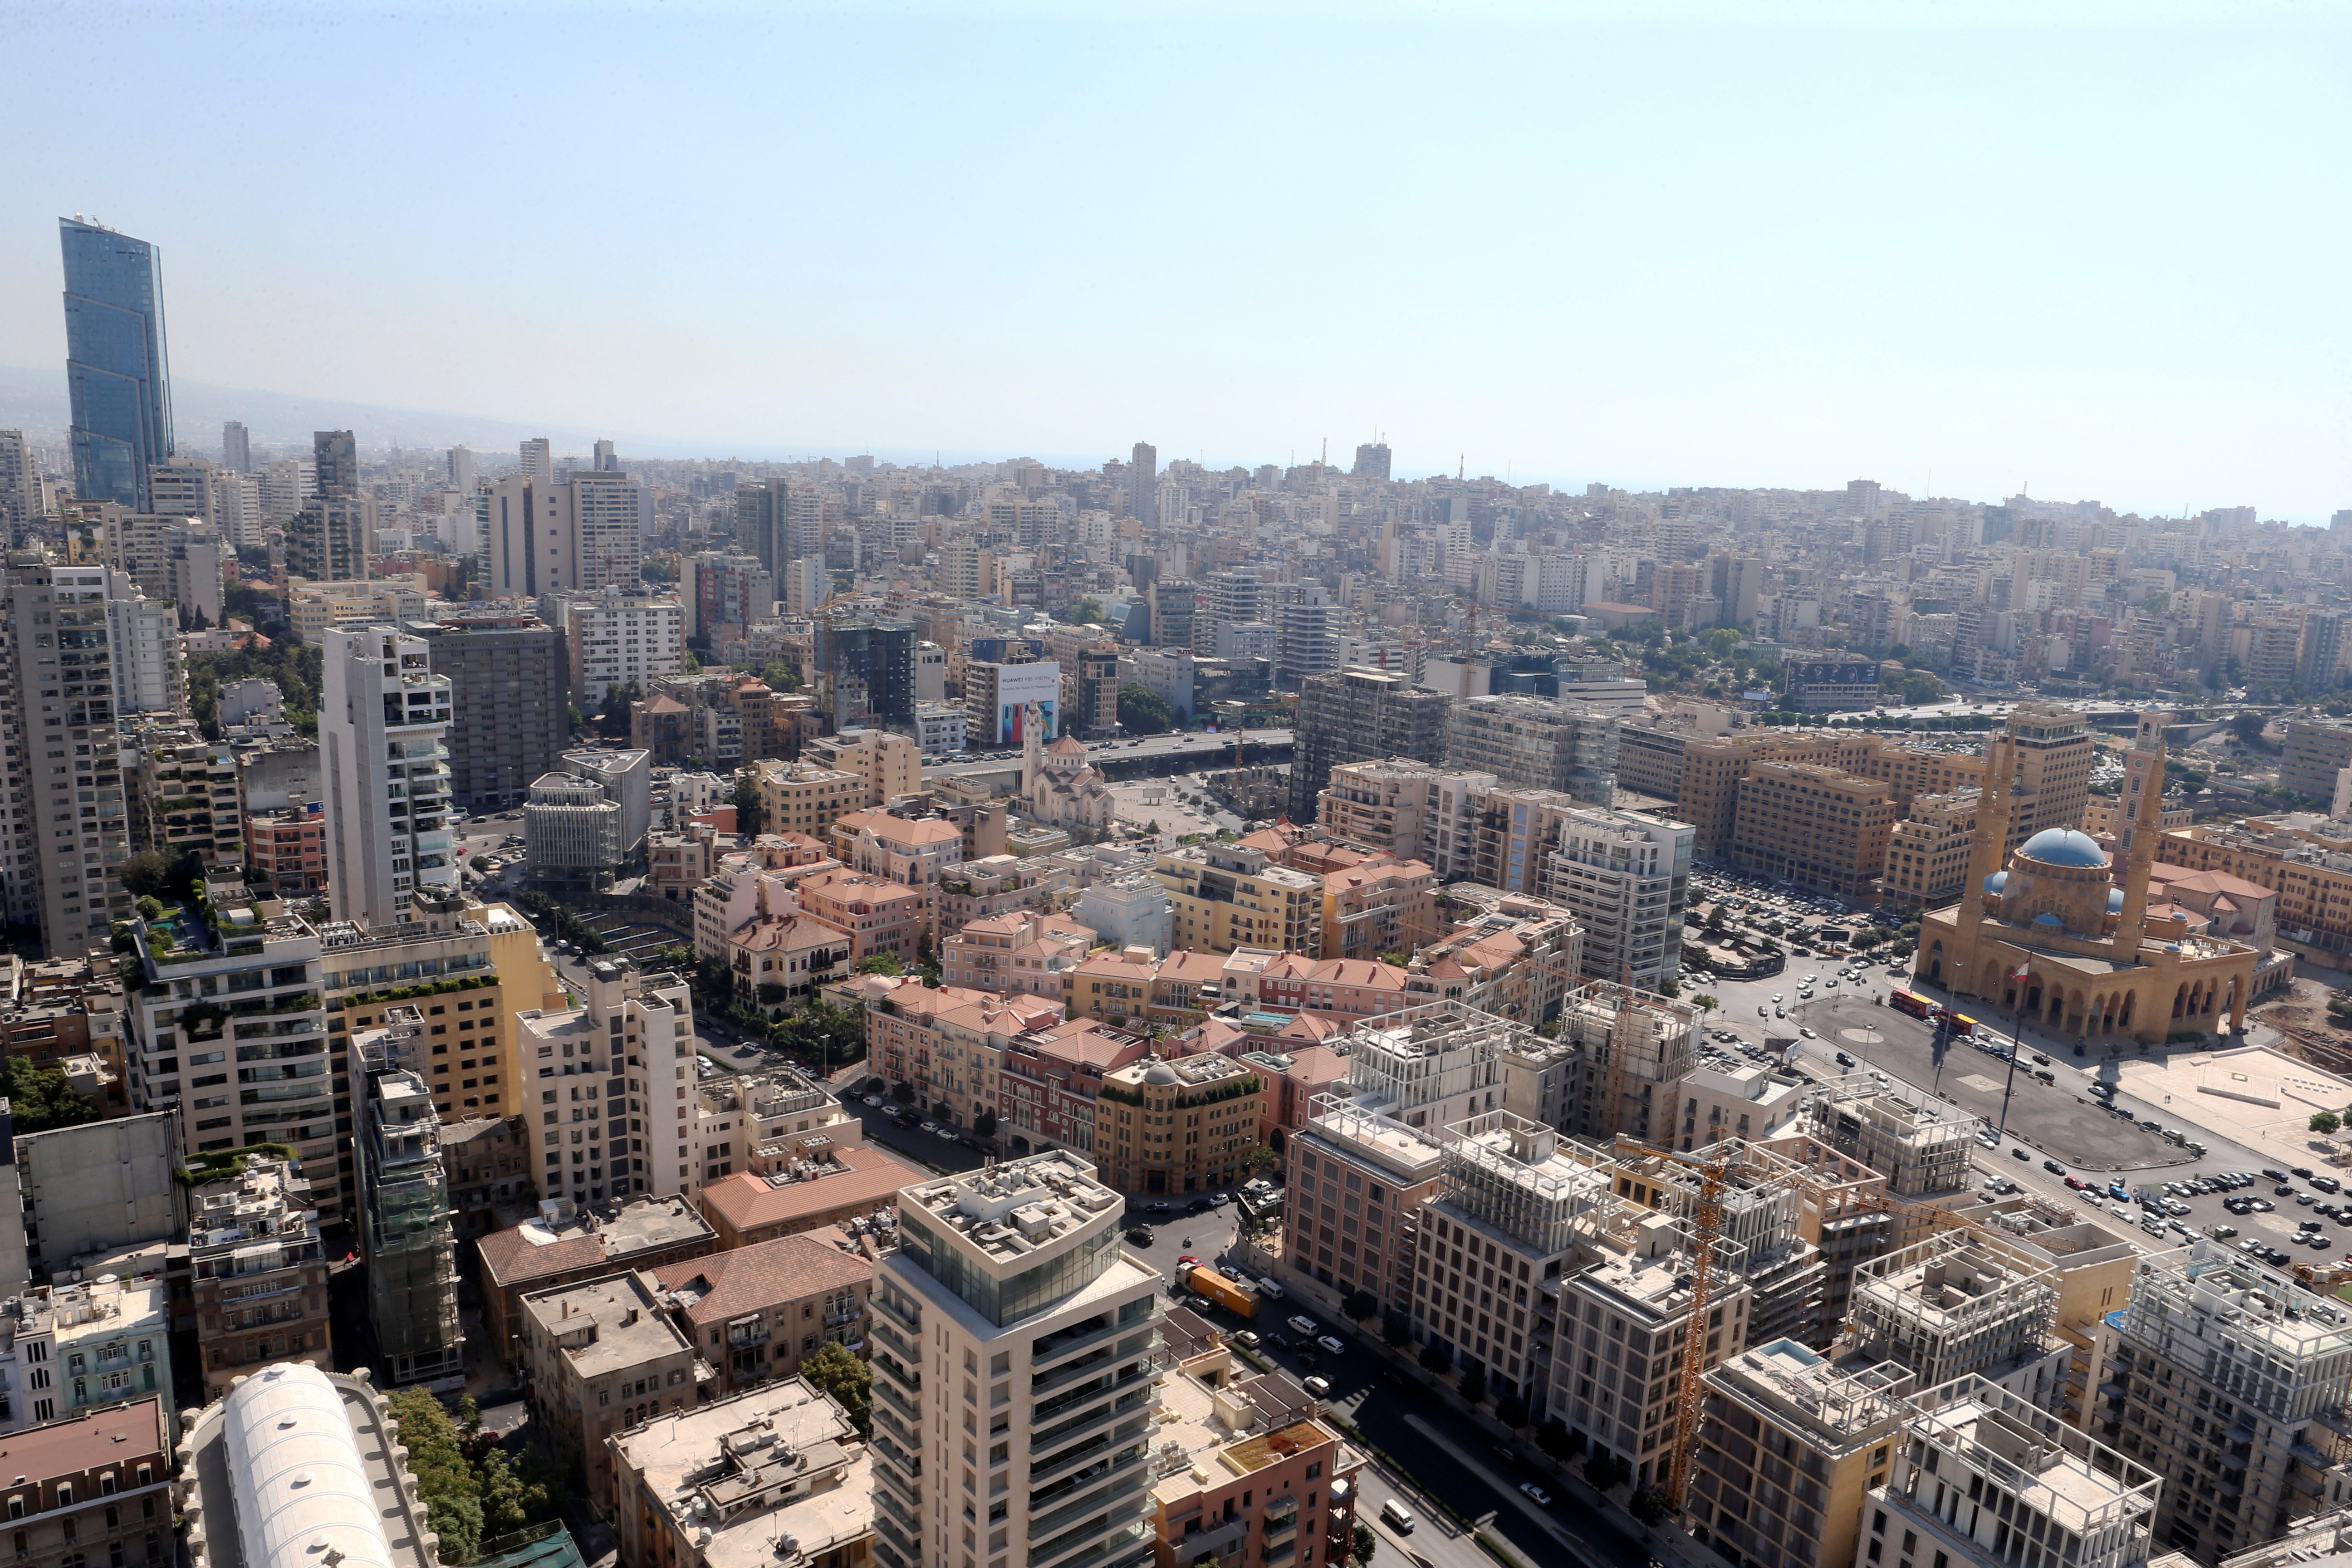 A general view of Beirut central district, Lebanon, August 22, 2019. Picture taken August 22, 2019. REUTERS/Mohamed Azakir